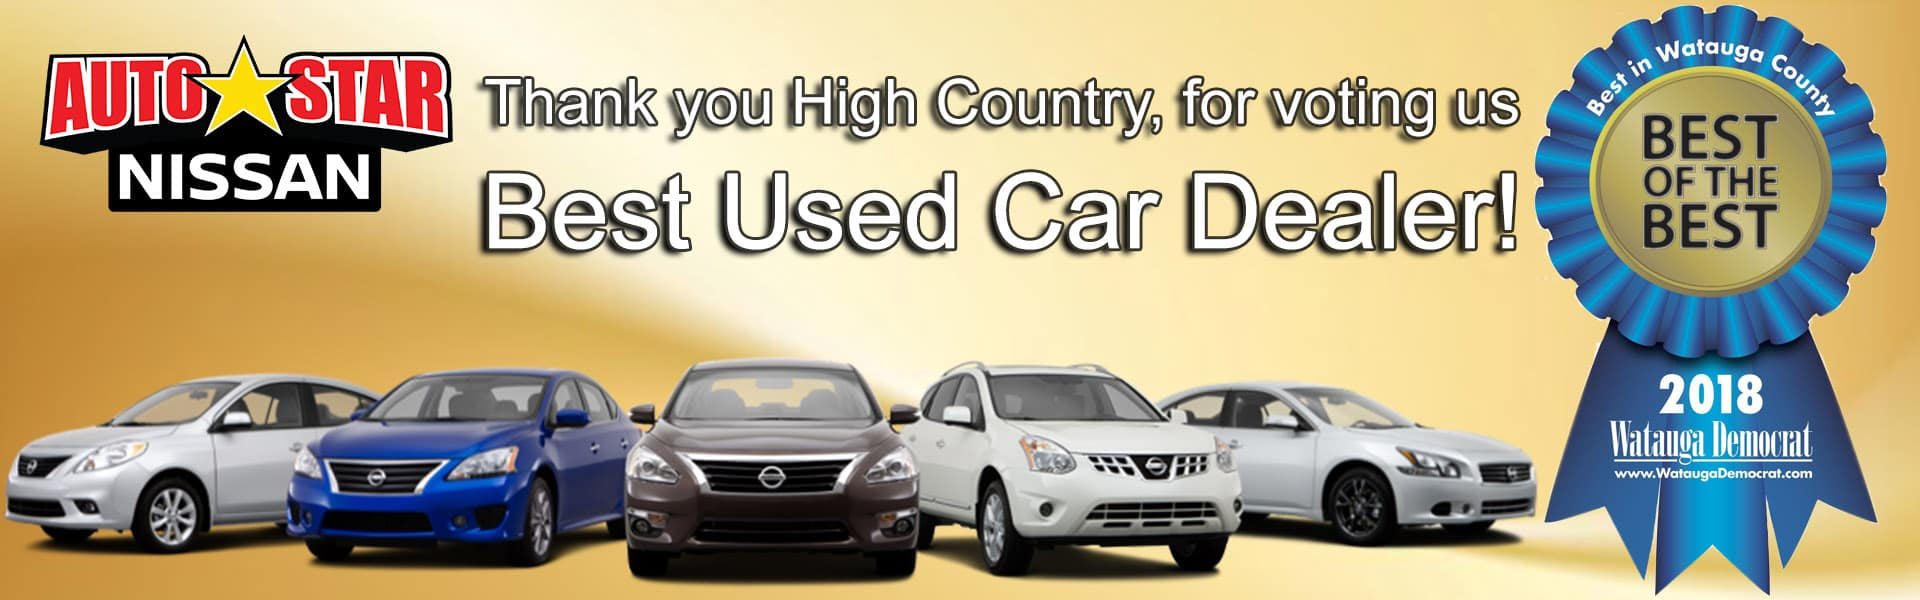 Nissan Dealers In Winston Salem Nissan Recomended Car